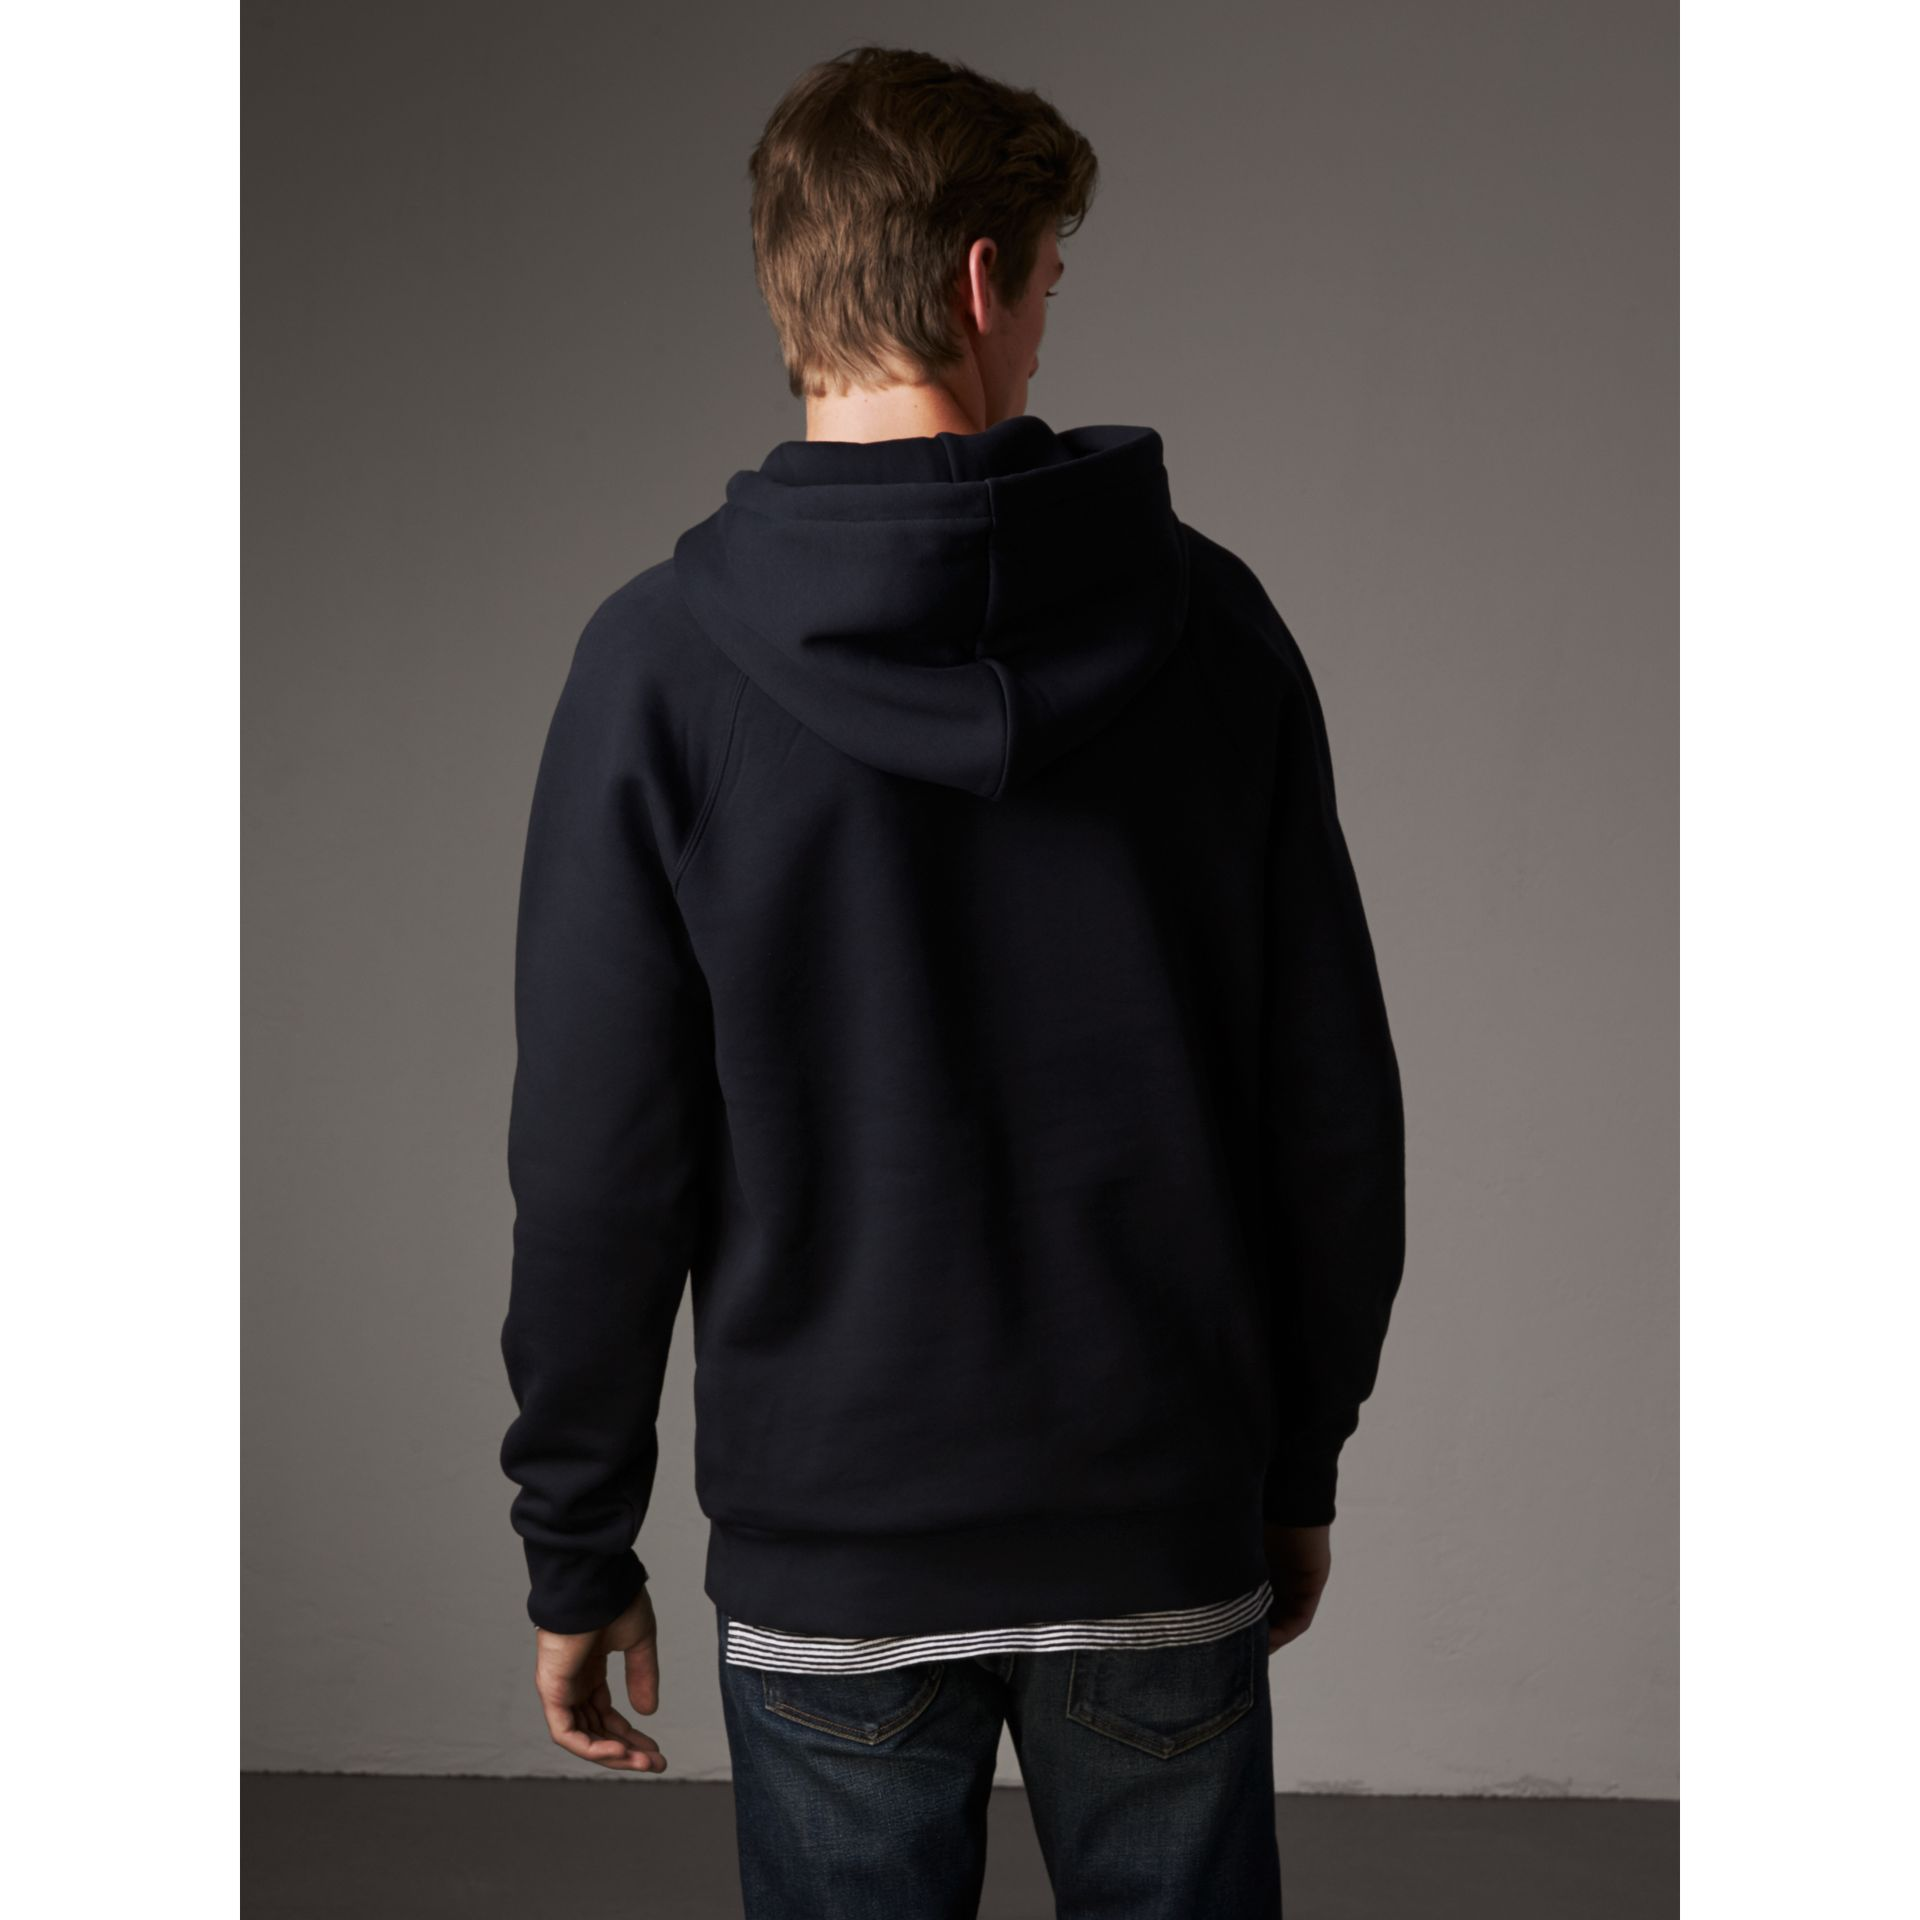 Embroidered Hooded Sweatshirt in Navy - Men | Burberry - gallery image 2